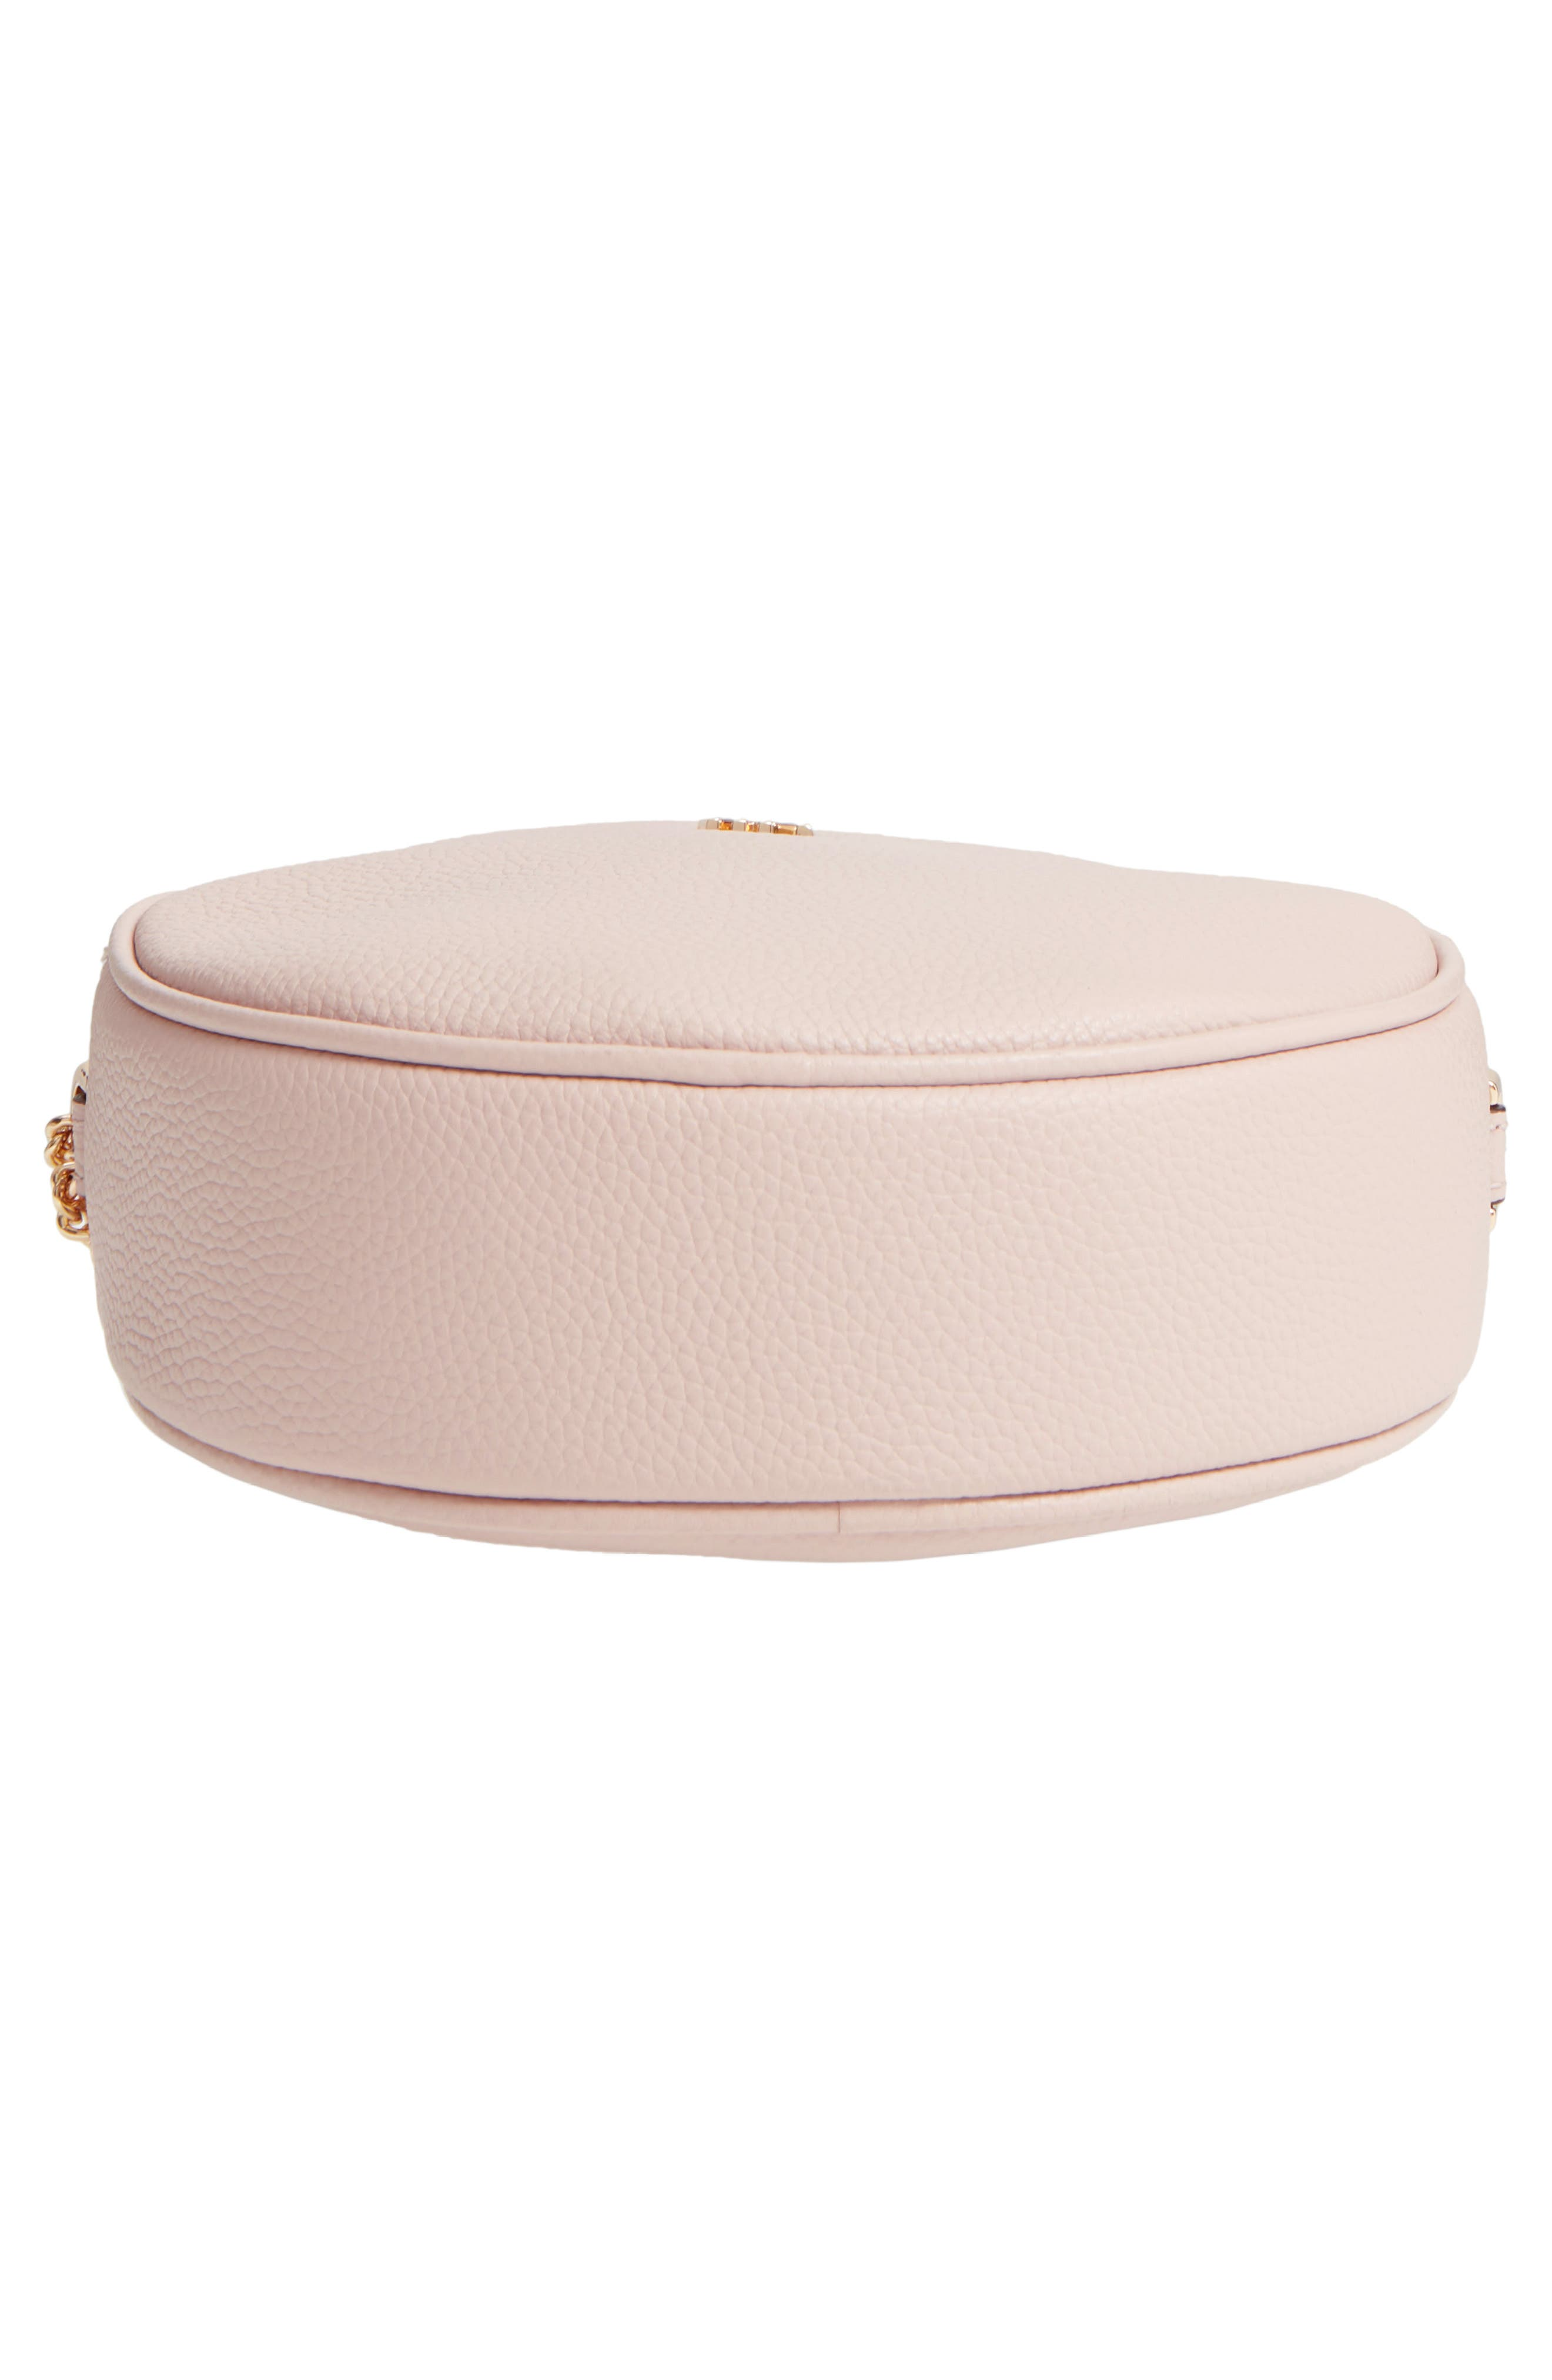 Medium Leather Canteen Bag,                             Alternate thumbnail 6, color,                             Soft Pink